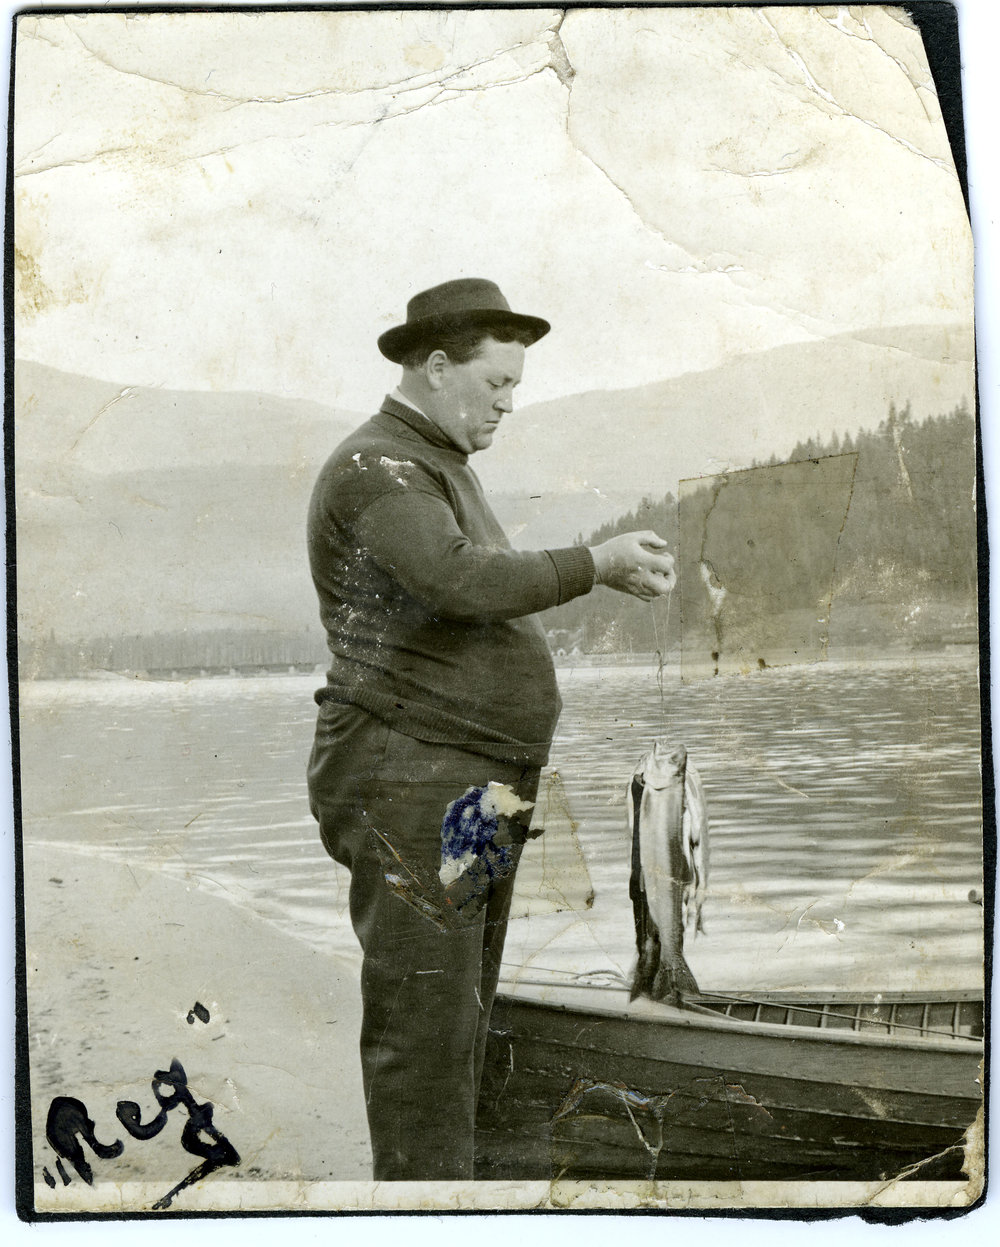 Reginald Upper fishing, date unknown